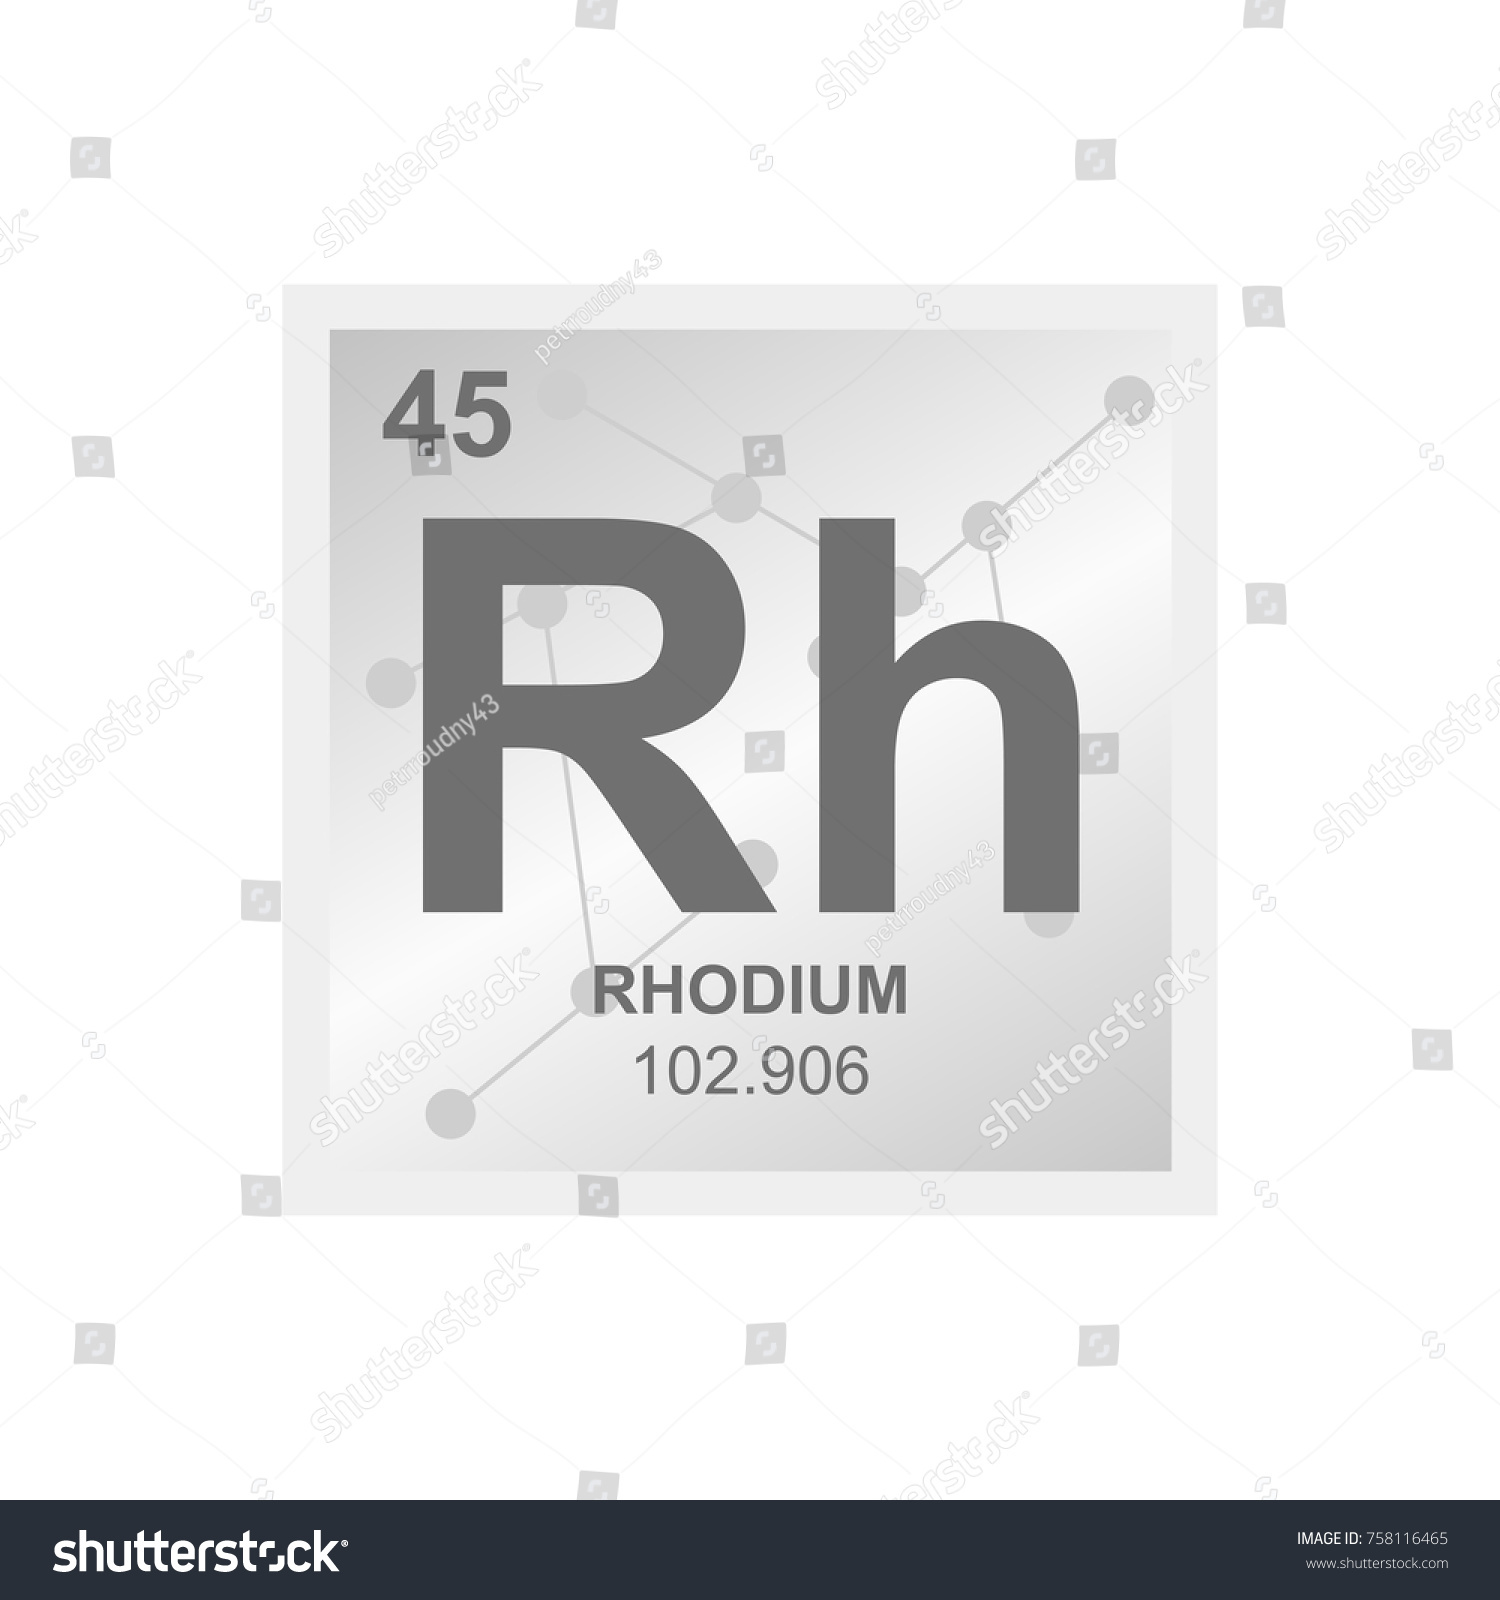 Rhodium on periodic table choice image periodic table images vector symbol rhodium periodic table elements stock vector vector symbol of rhodium from the periodic table gamestrikefo Gallery